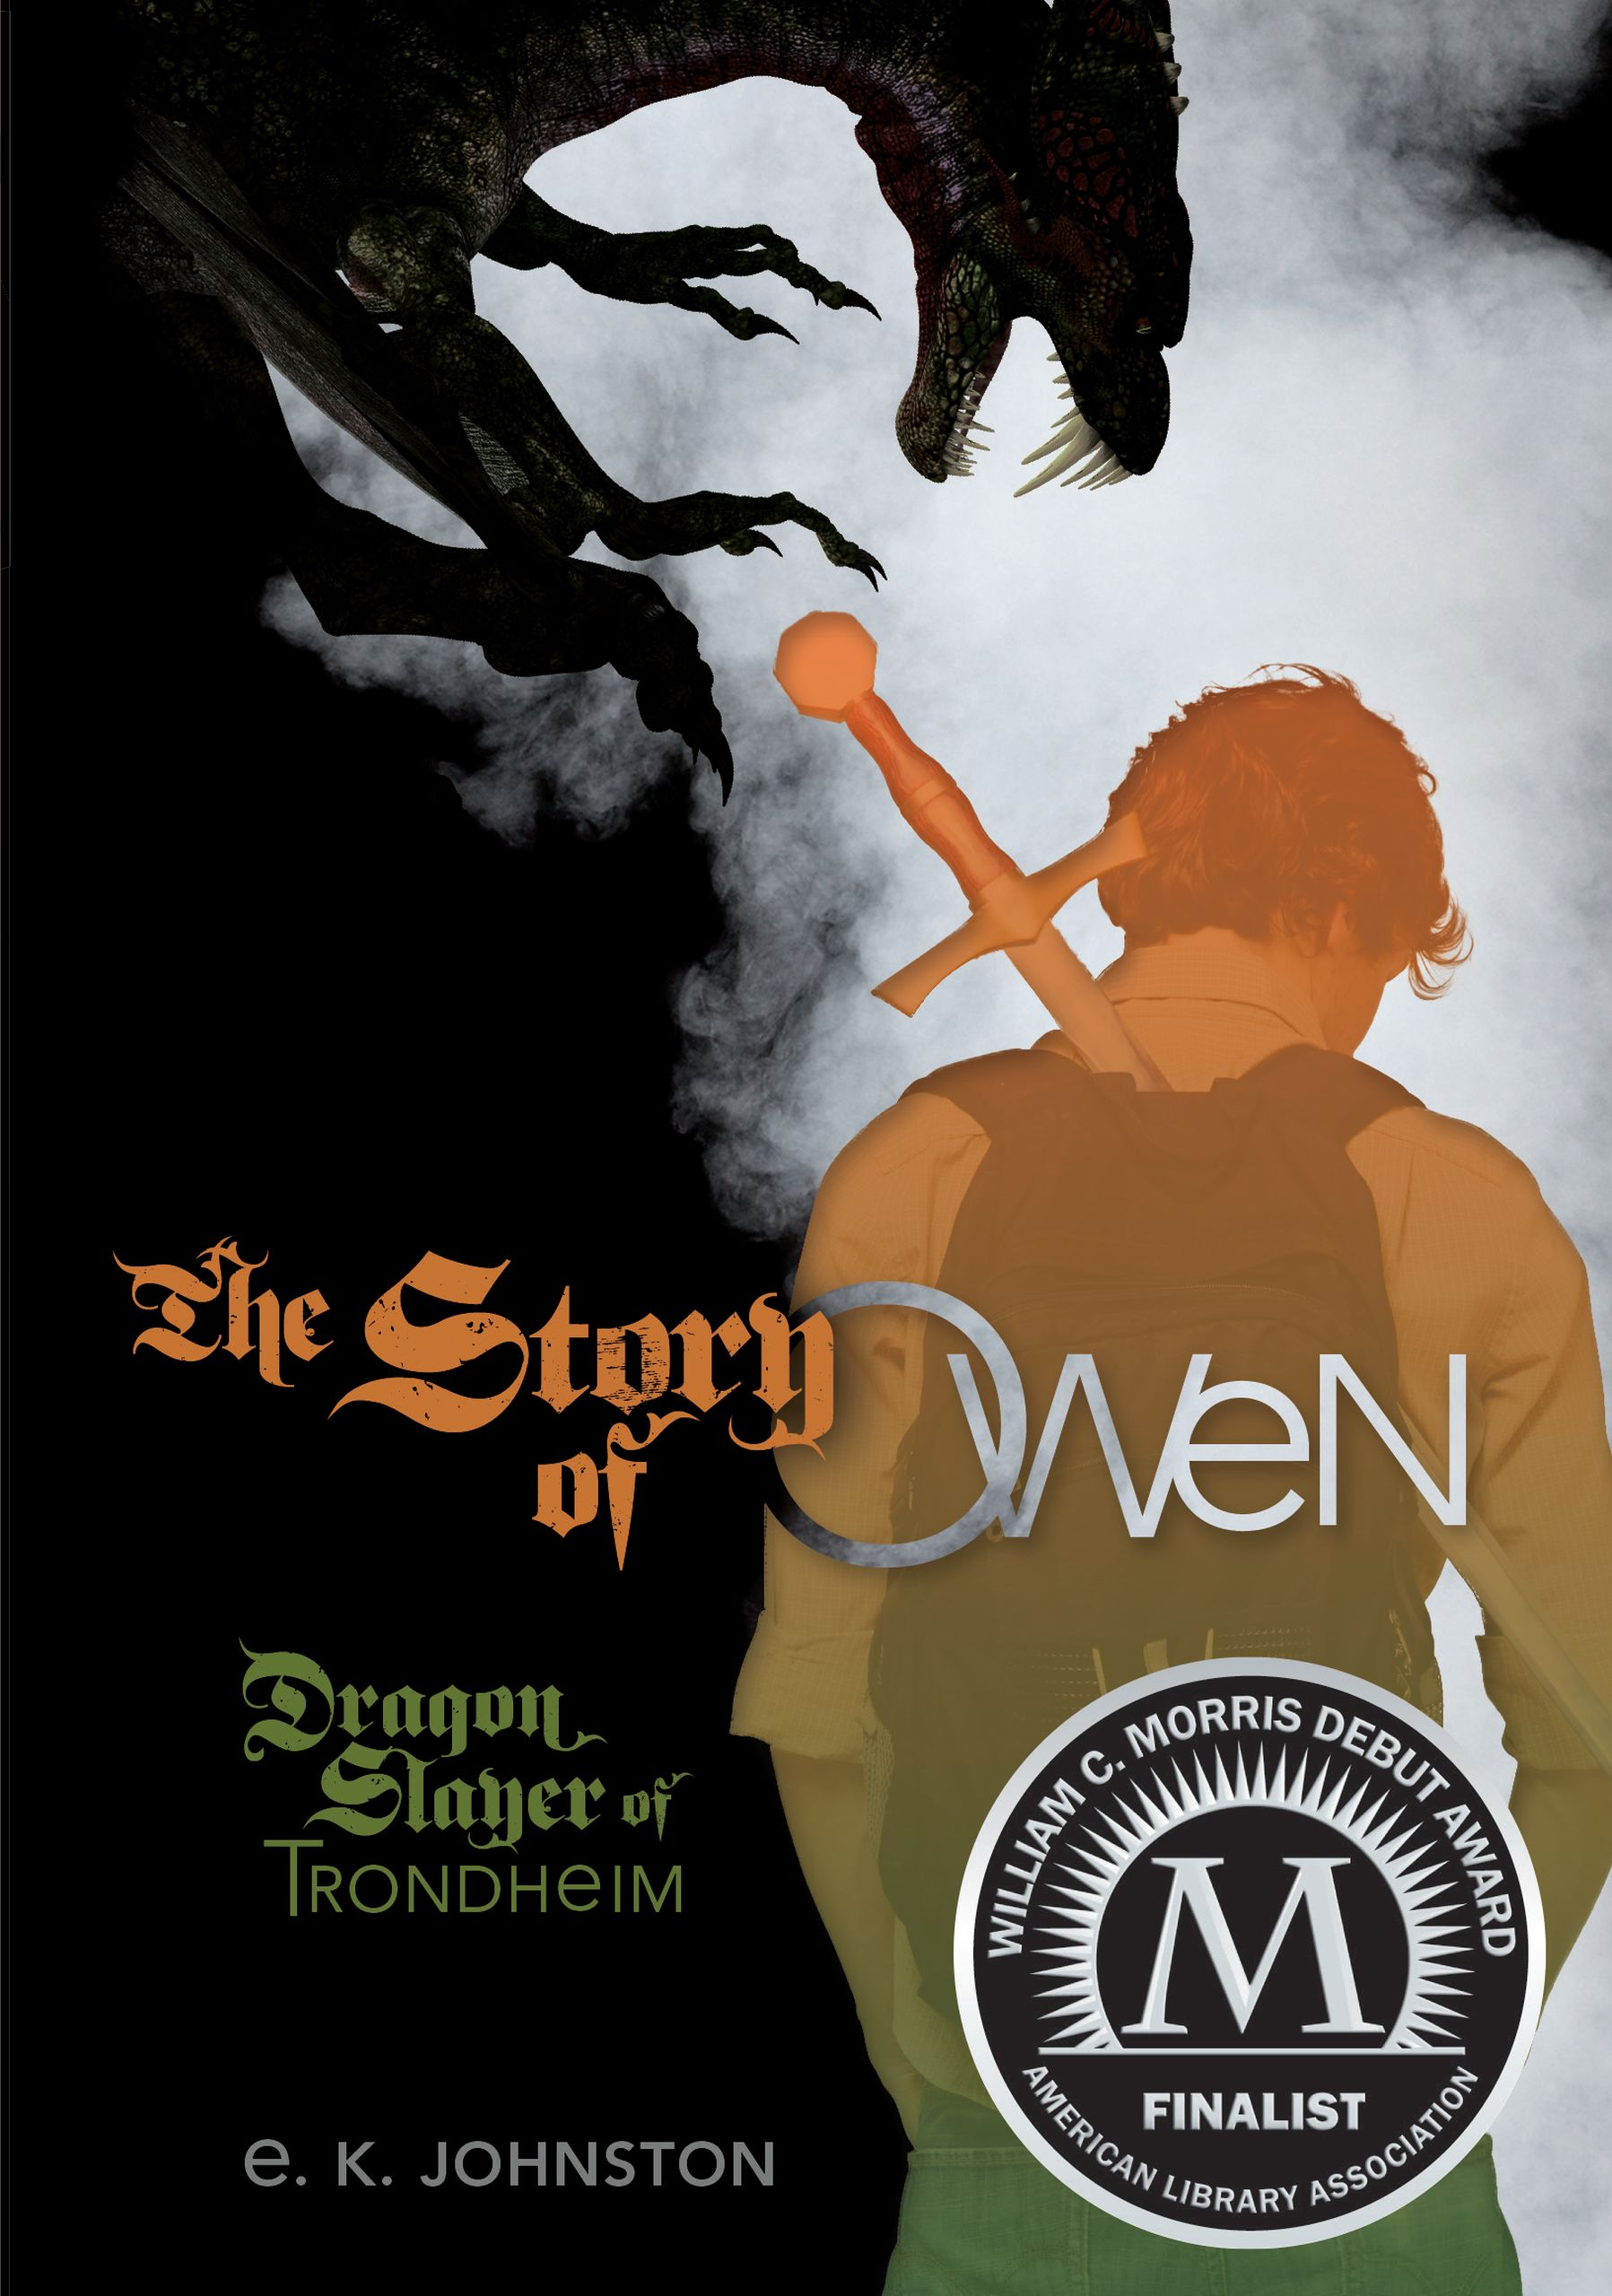 Cover image for The Story of Owen [electronic resource] : Dragon Slayer of Trondheim